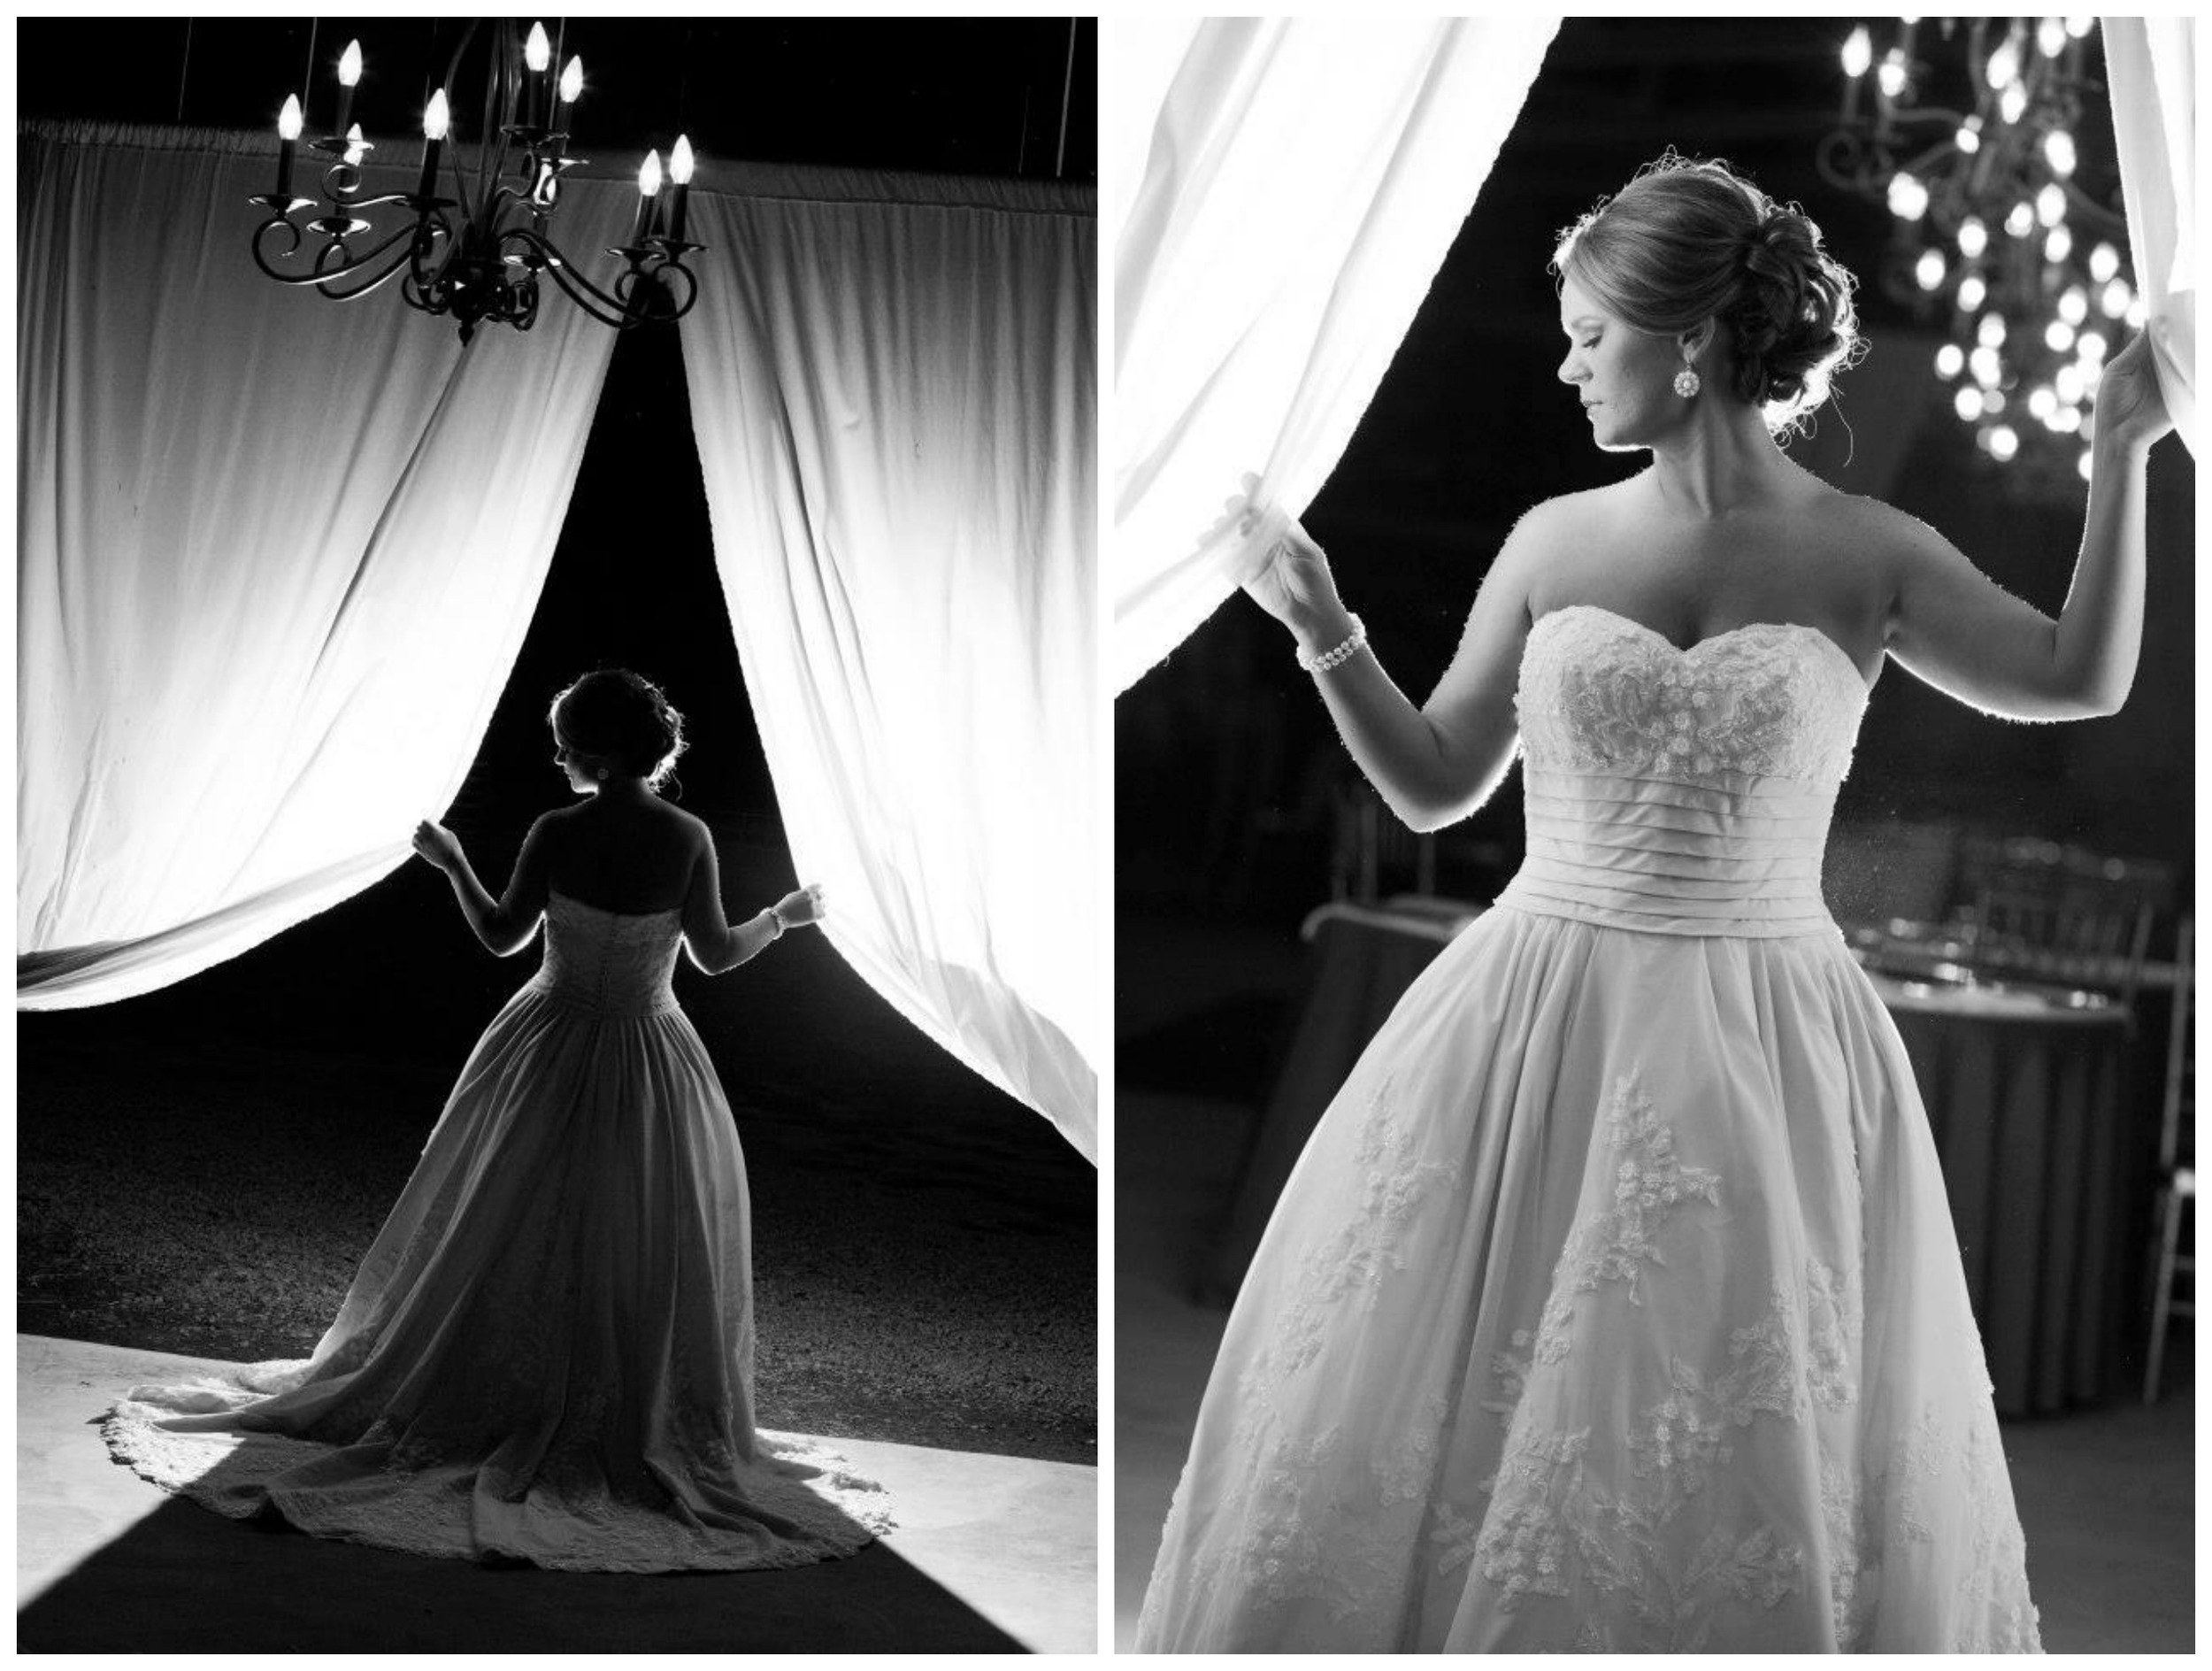 JRowe Photography .  Jana 's bridals are as glamorous as it gets!